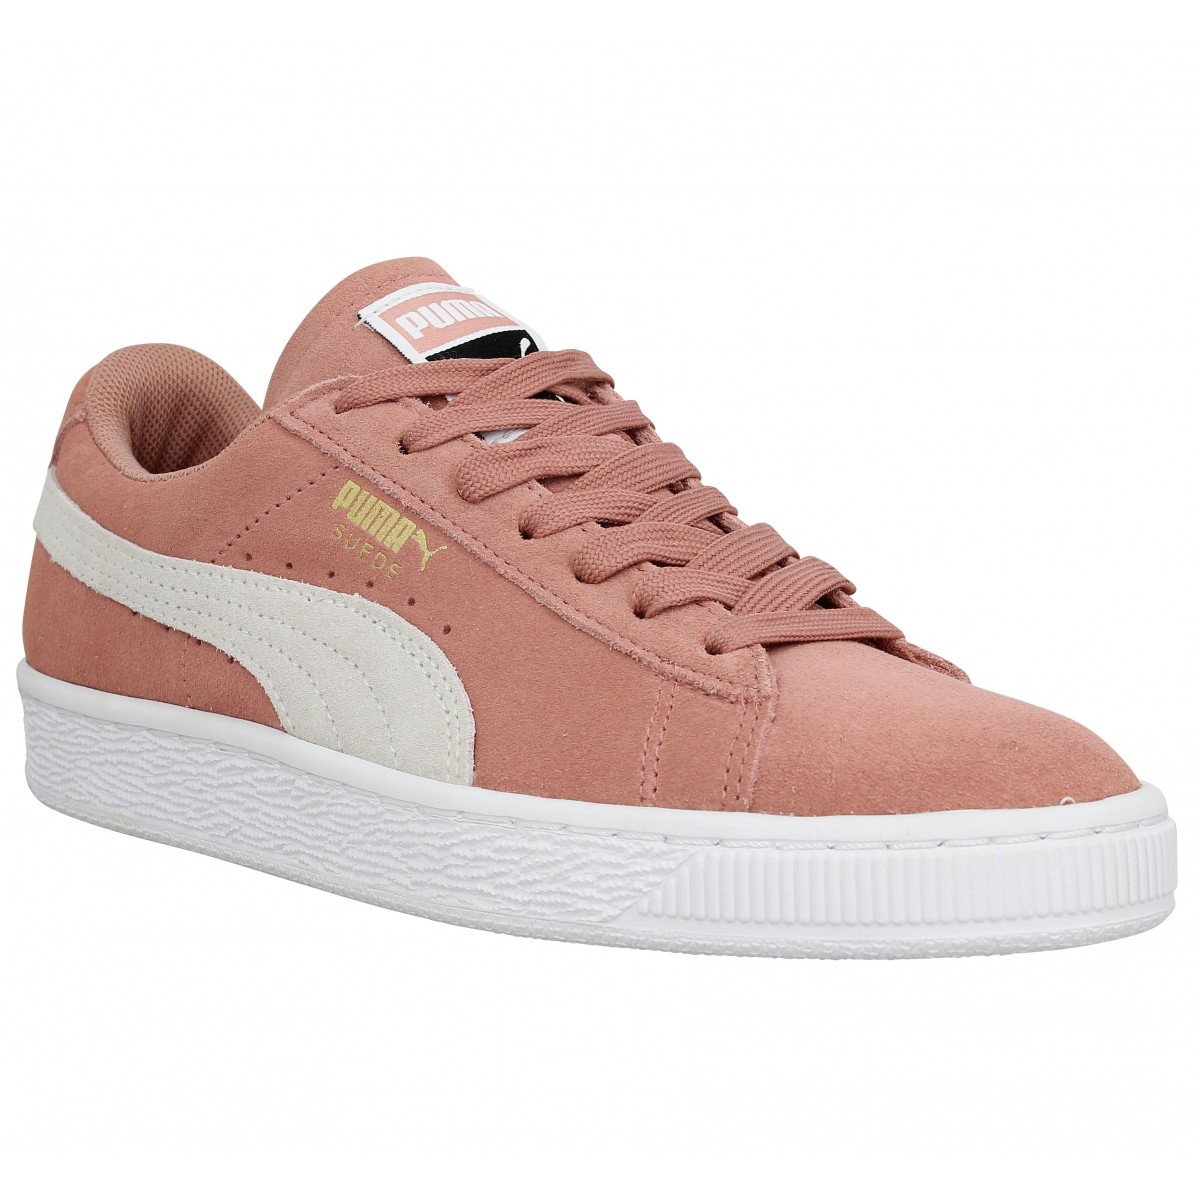 Baskets PUMA Suede Classic velours Femme Cameo Brown